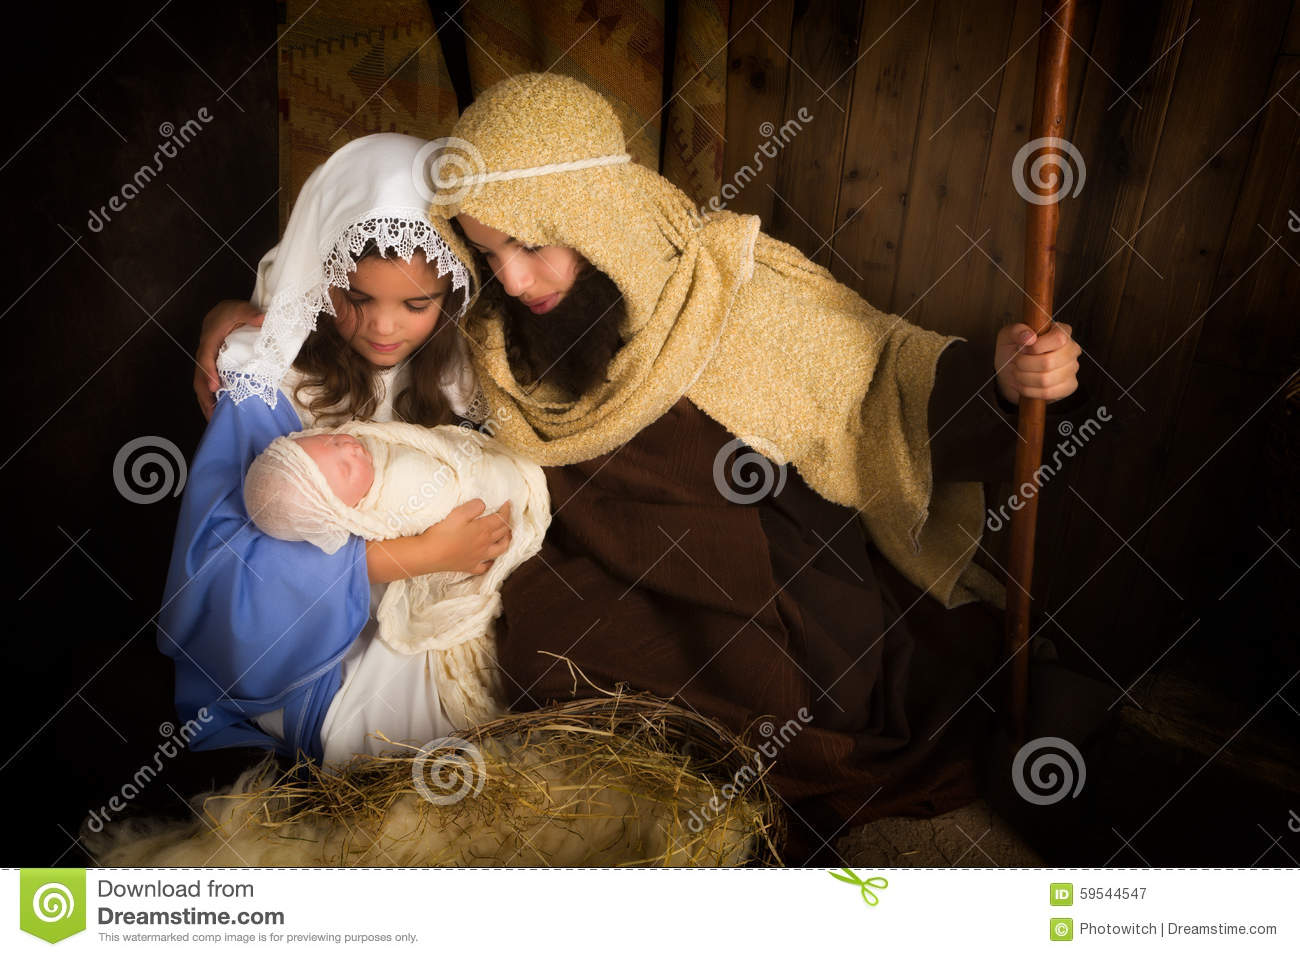 Kids christmas play stock image. Image of father, christian - 59544547